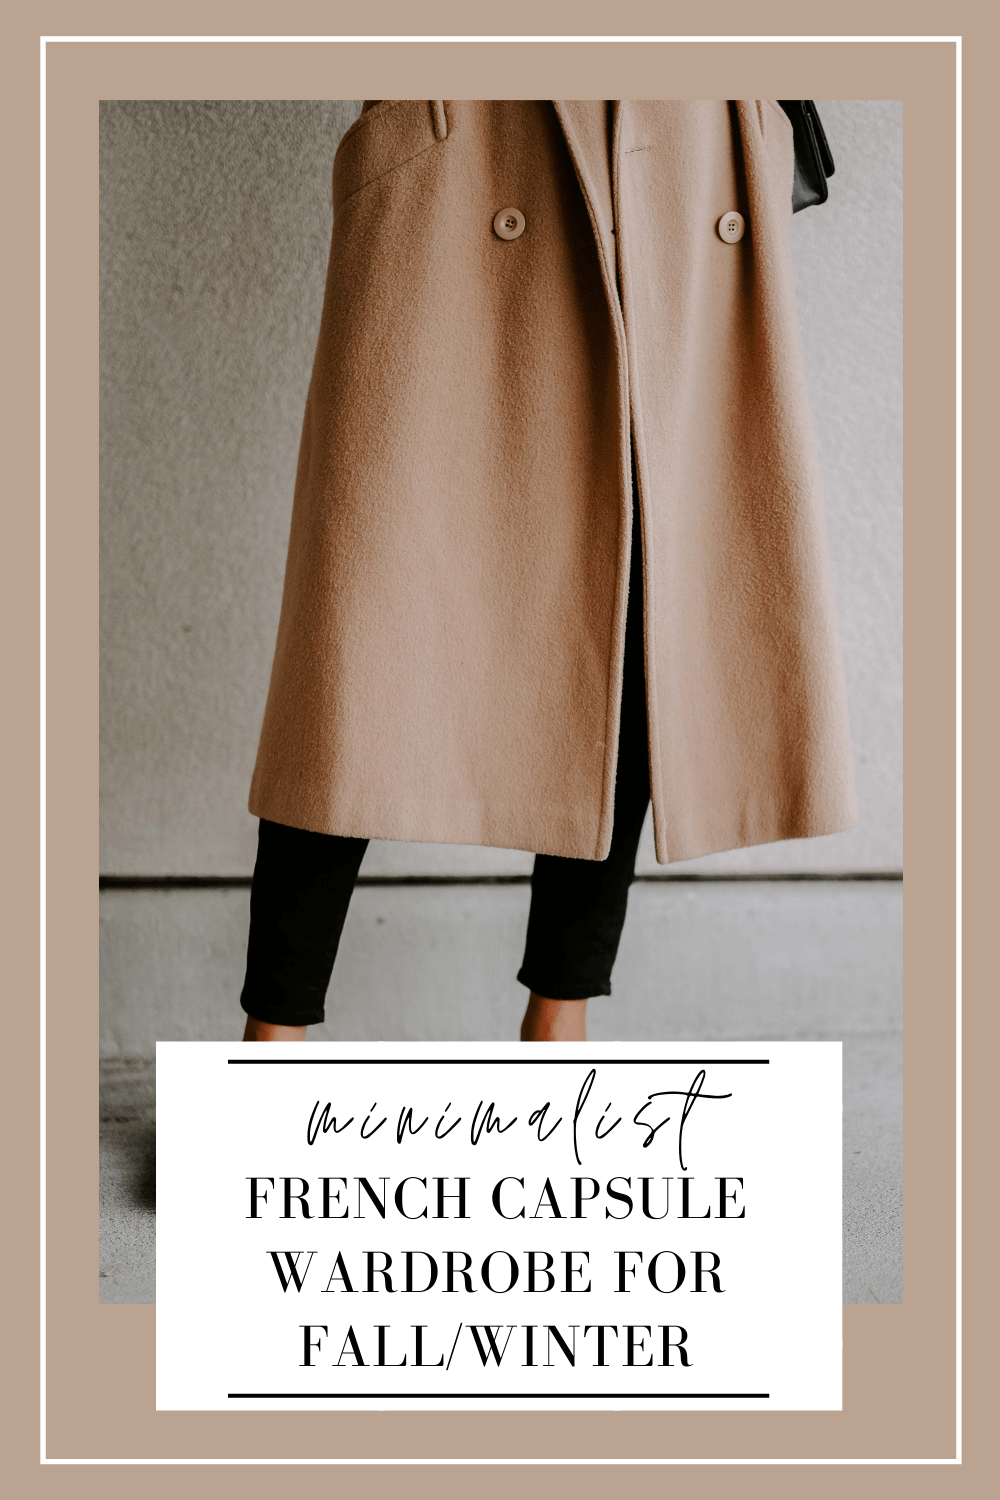 french capsule wardrobe fall:winter